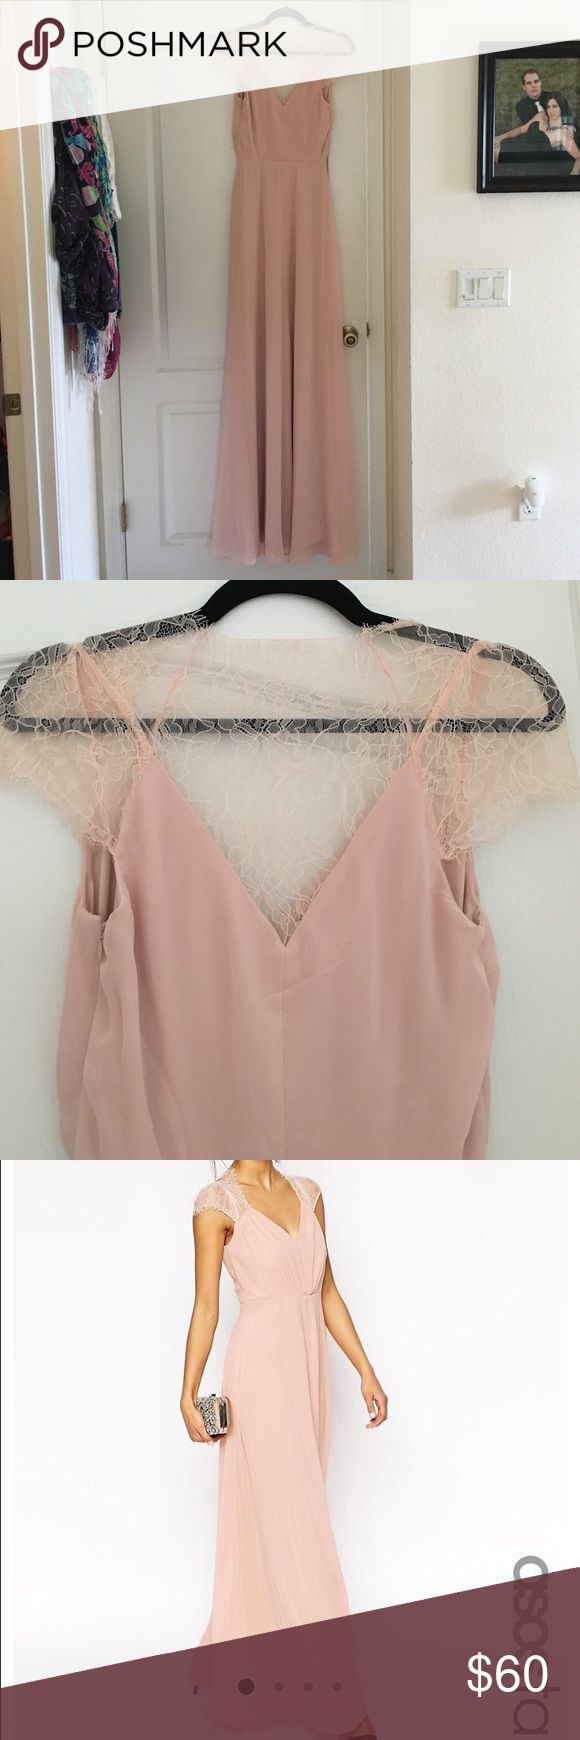 ASOS Blush Bridesmaid Long Dress size 4 This dress is a beautiful tall bridesmaid dress in a blush pink color. V neck top with lace sleeves and lace detailing across the back and shoulders. New with tags. Not hemmed. Asos Dresses Maxi